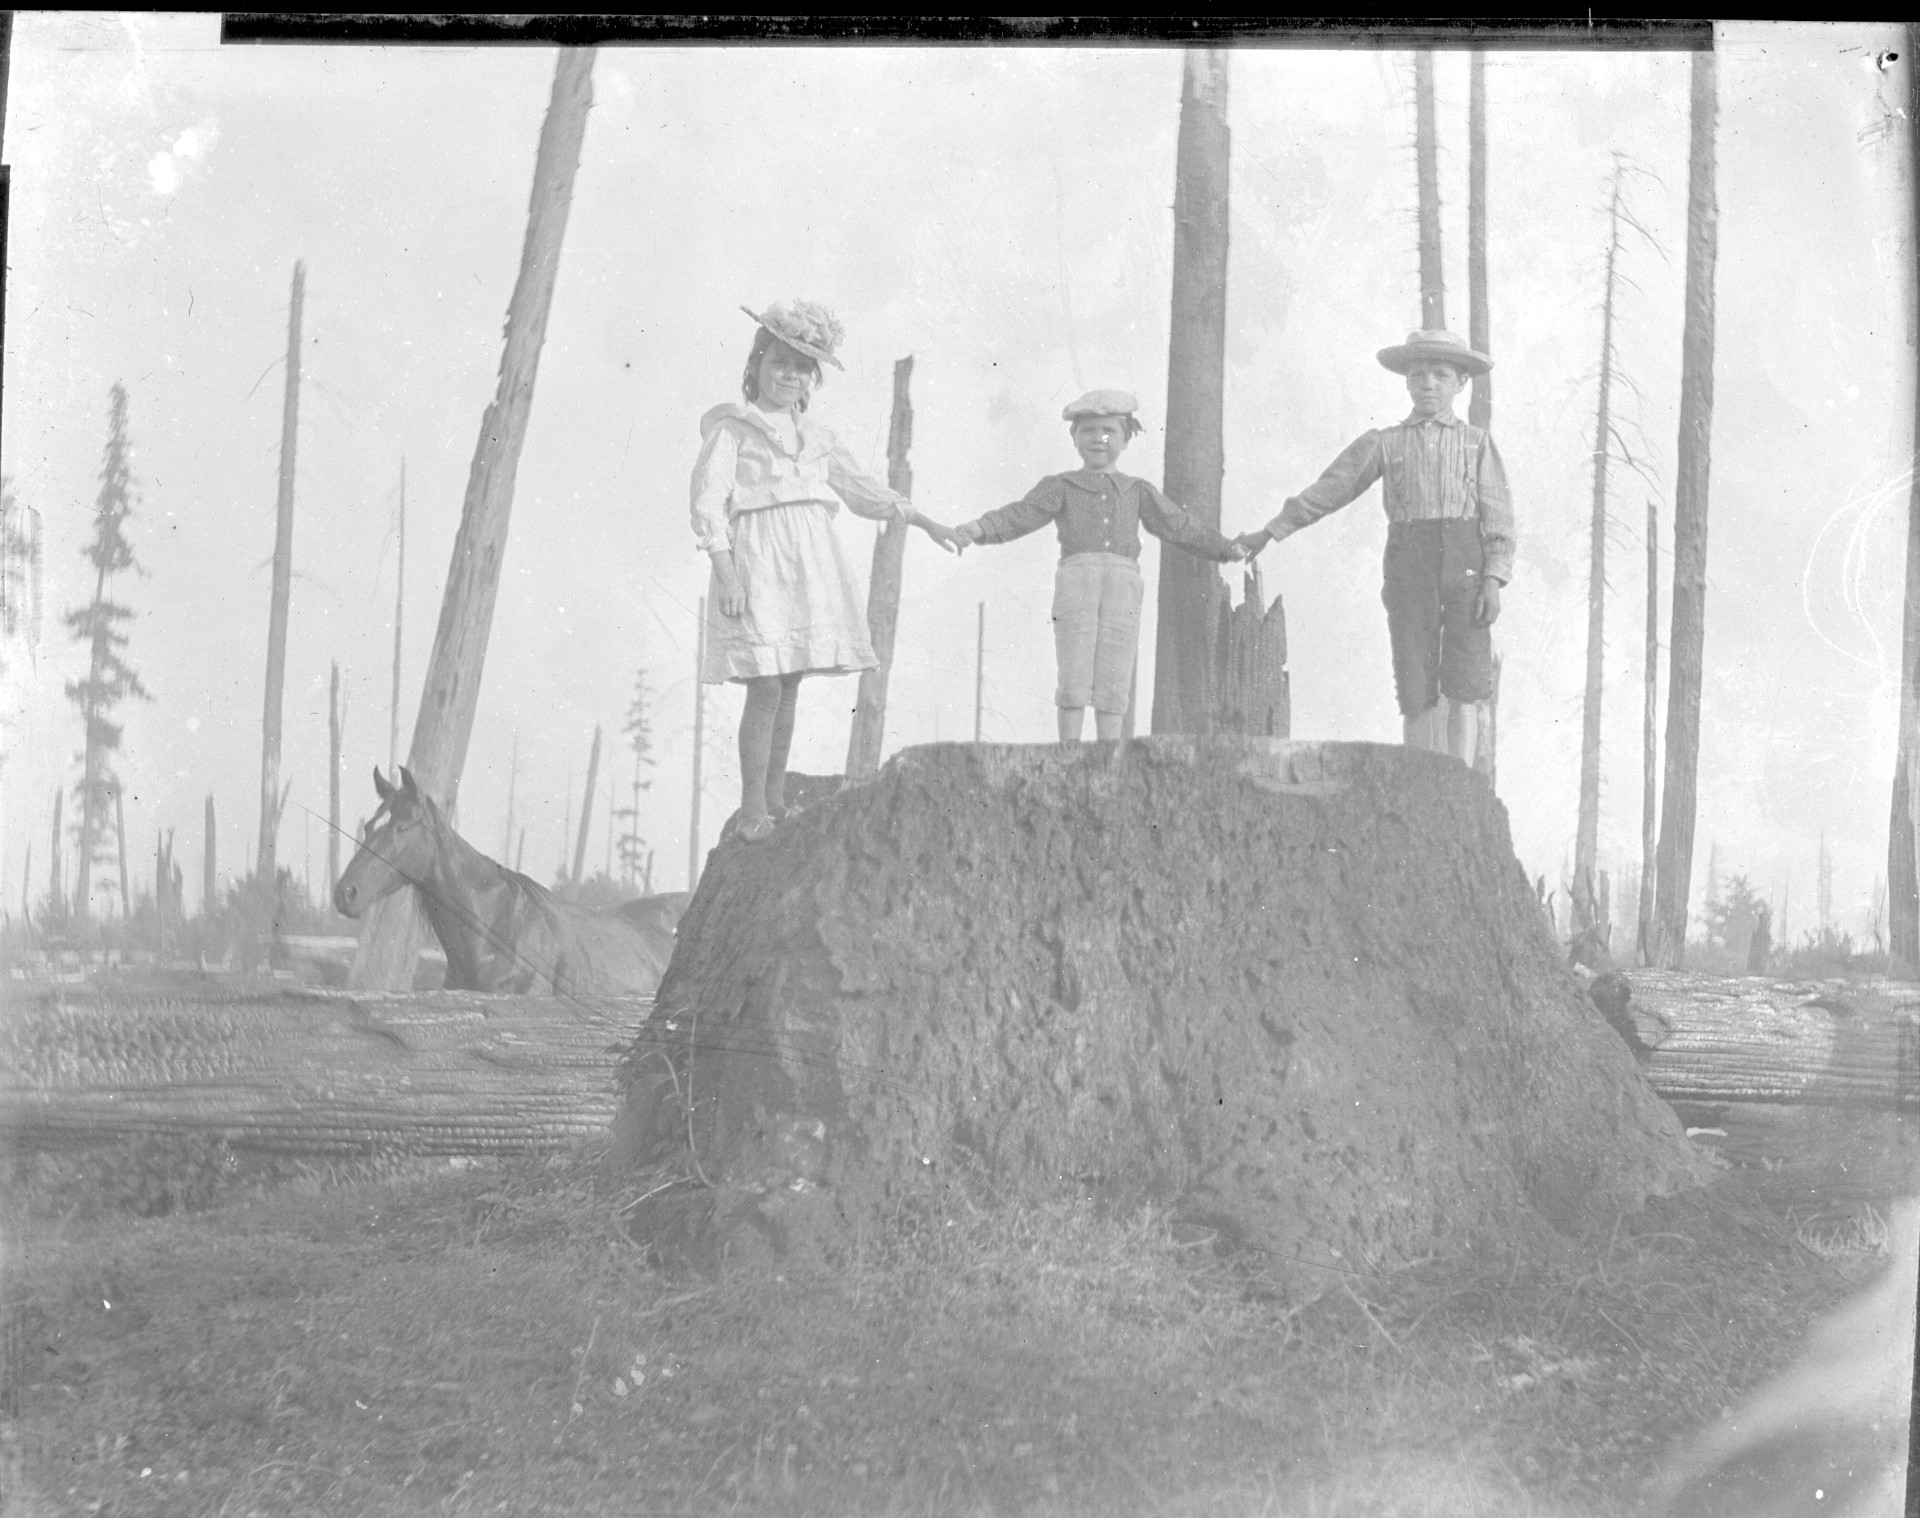 Large old growth trees were removed before farming could begin.